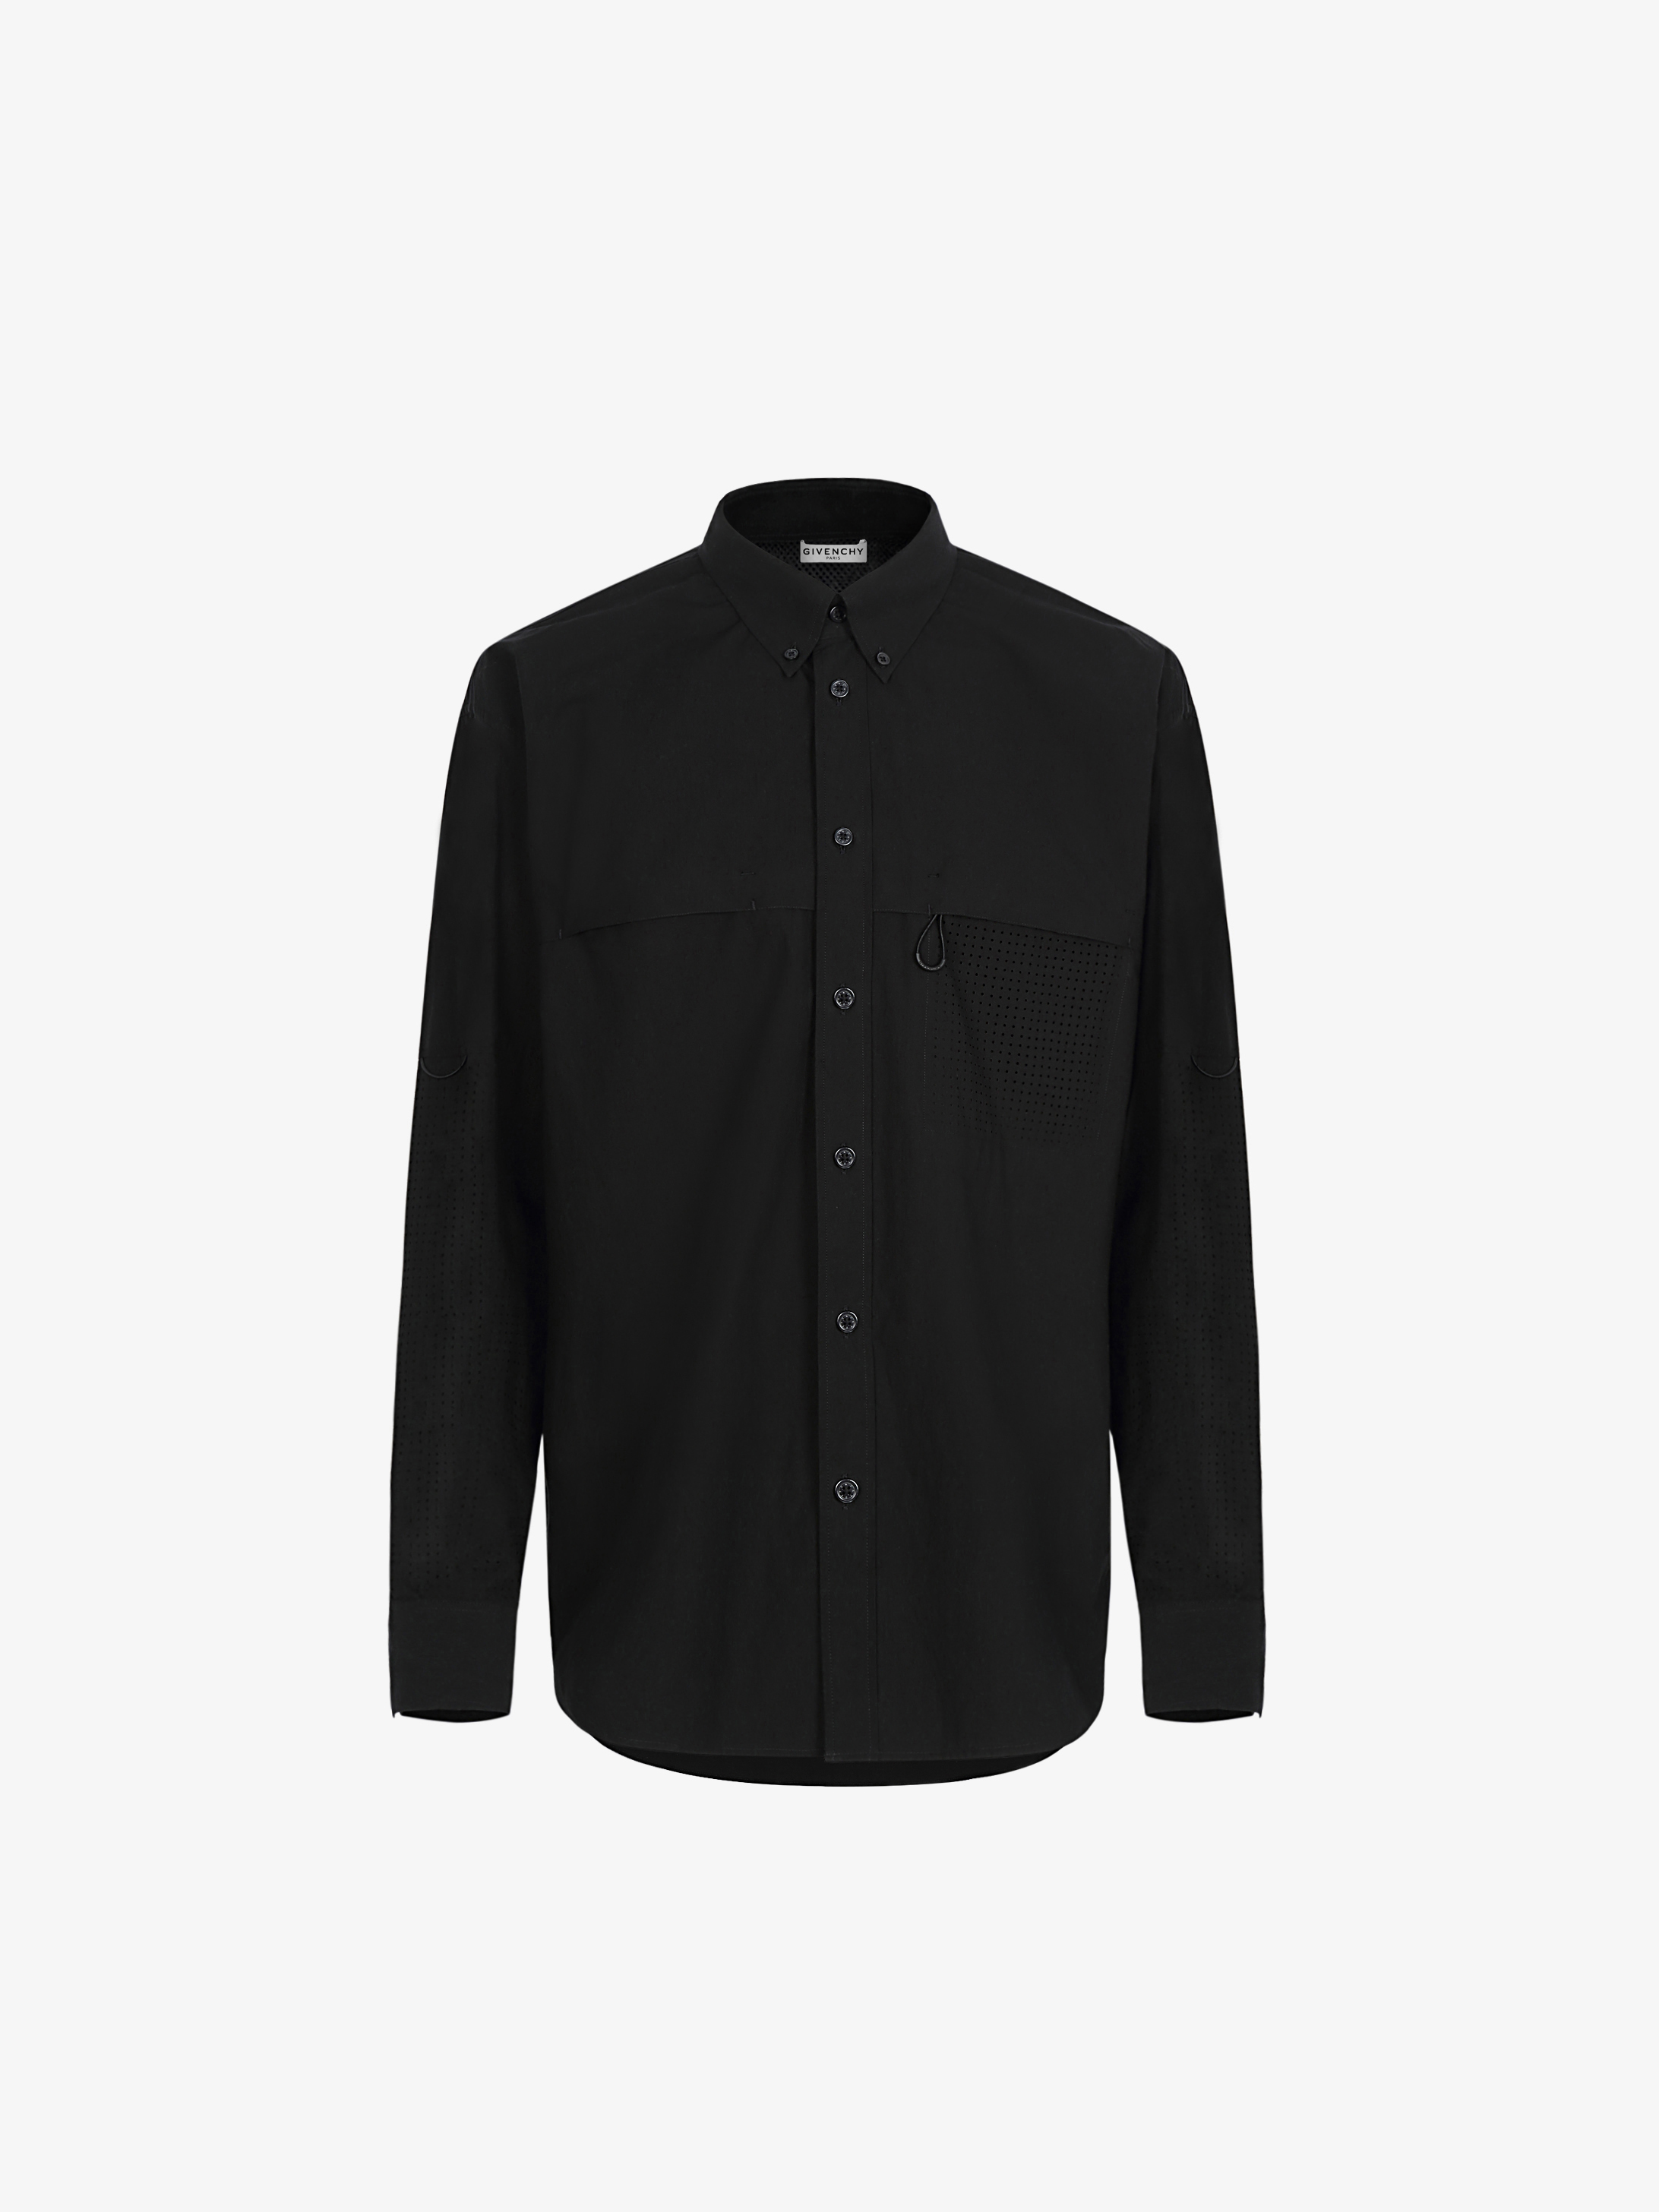 GIVENCHY perforated shirt in cotton